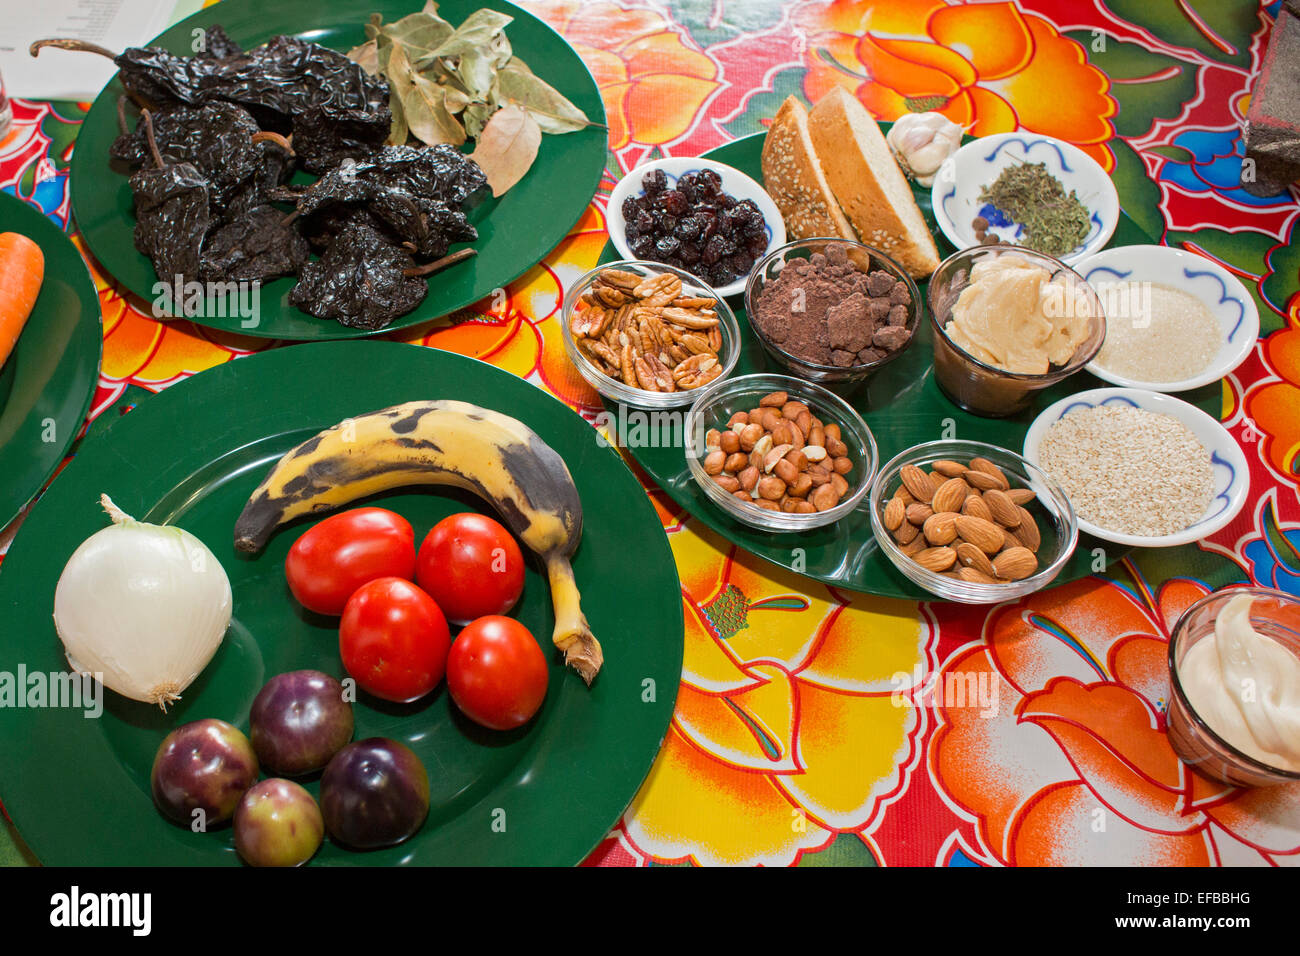 Oaxaca, Mexico - Ingredients for mole negro, displayed at a cooking class for American tourists. - Stock Image